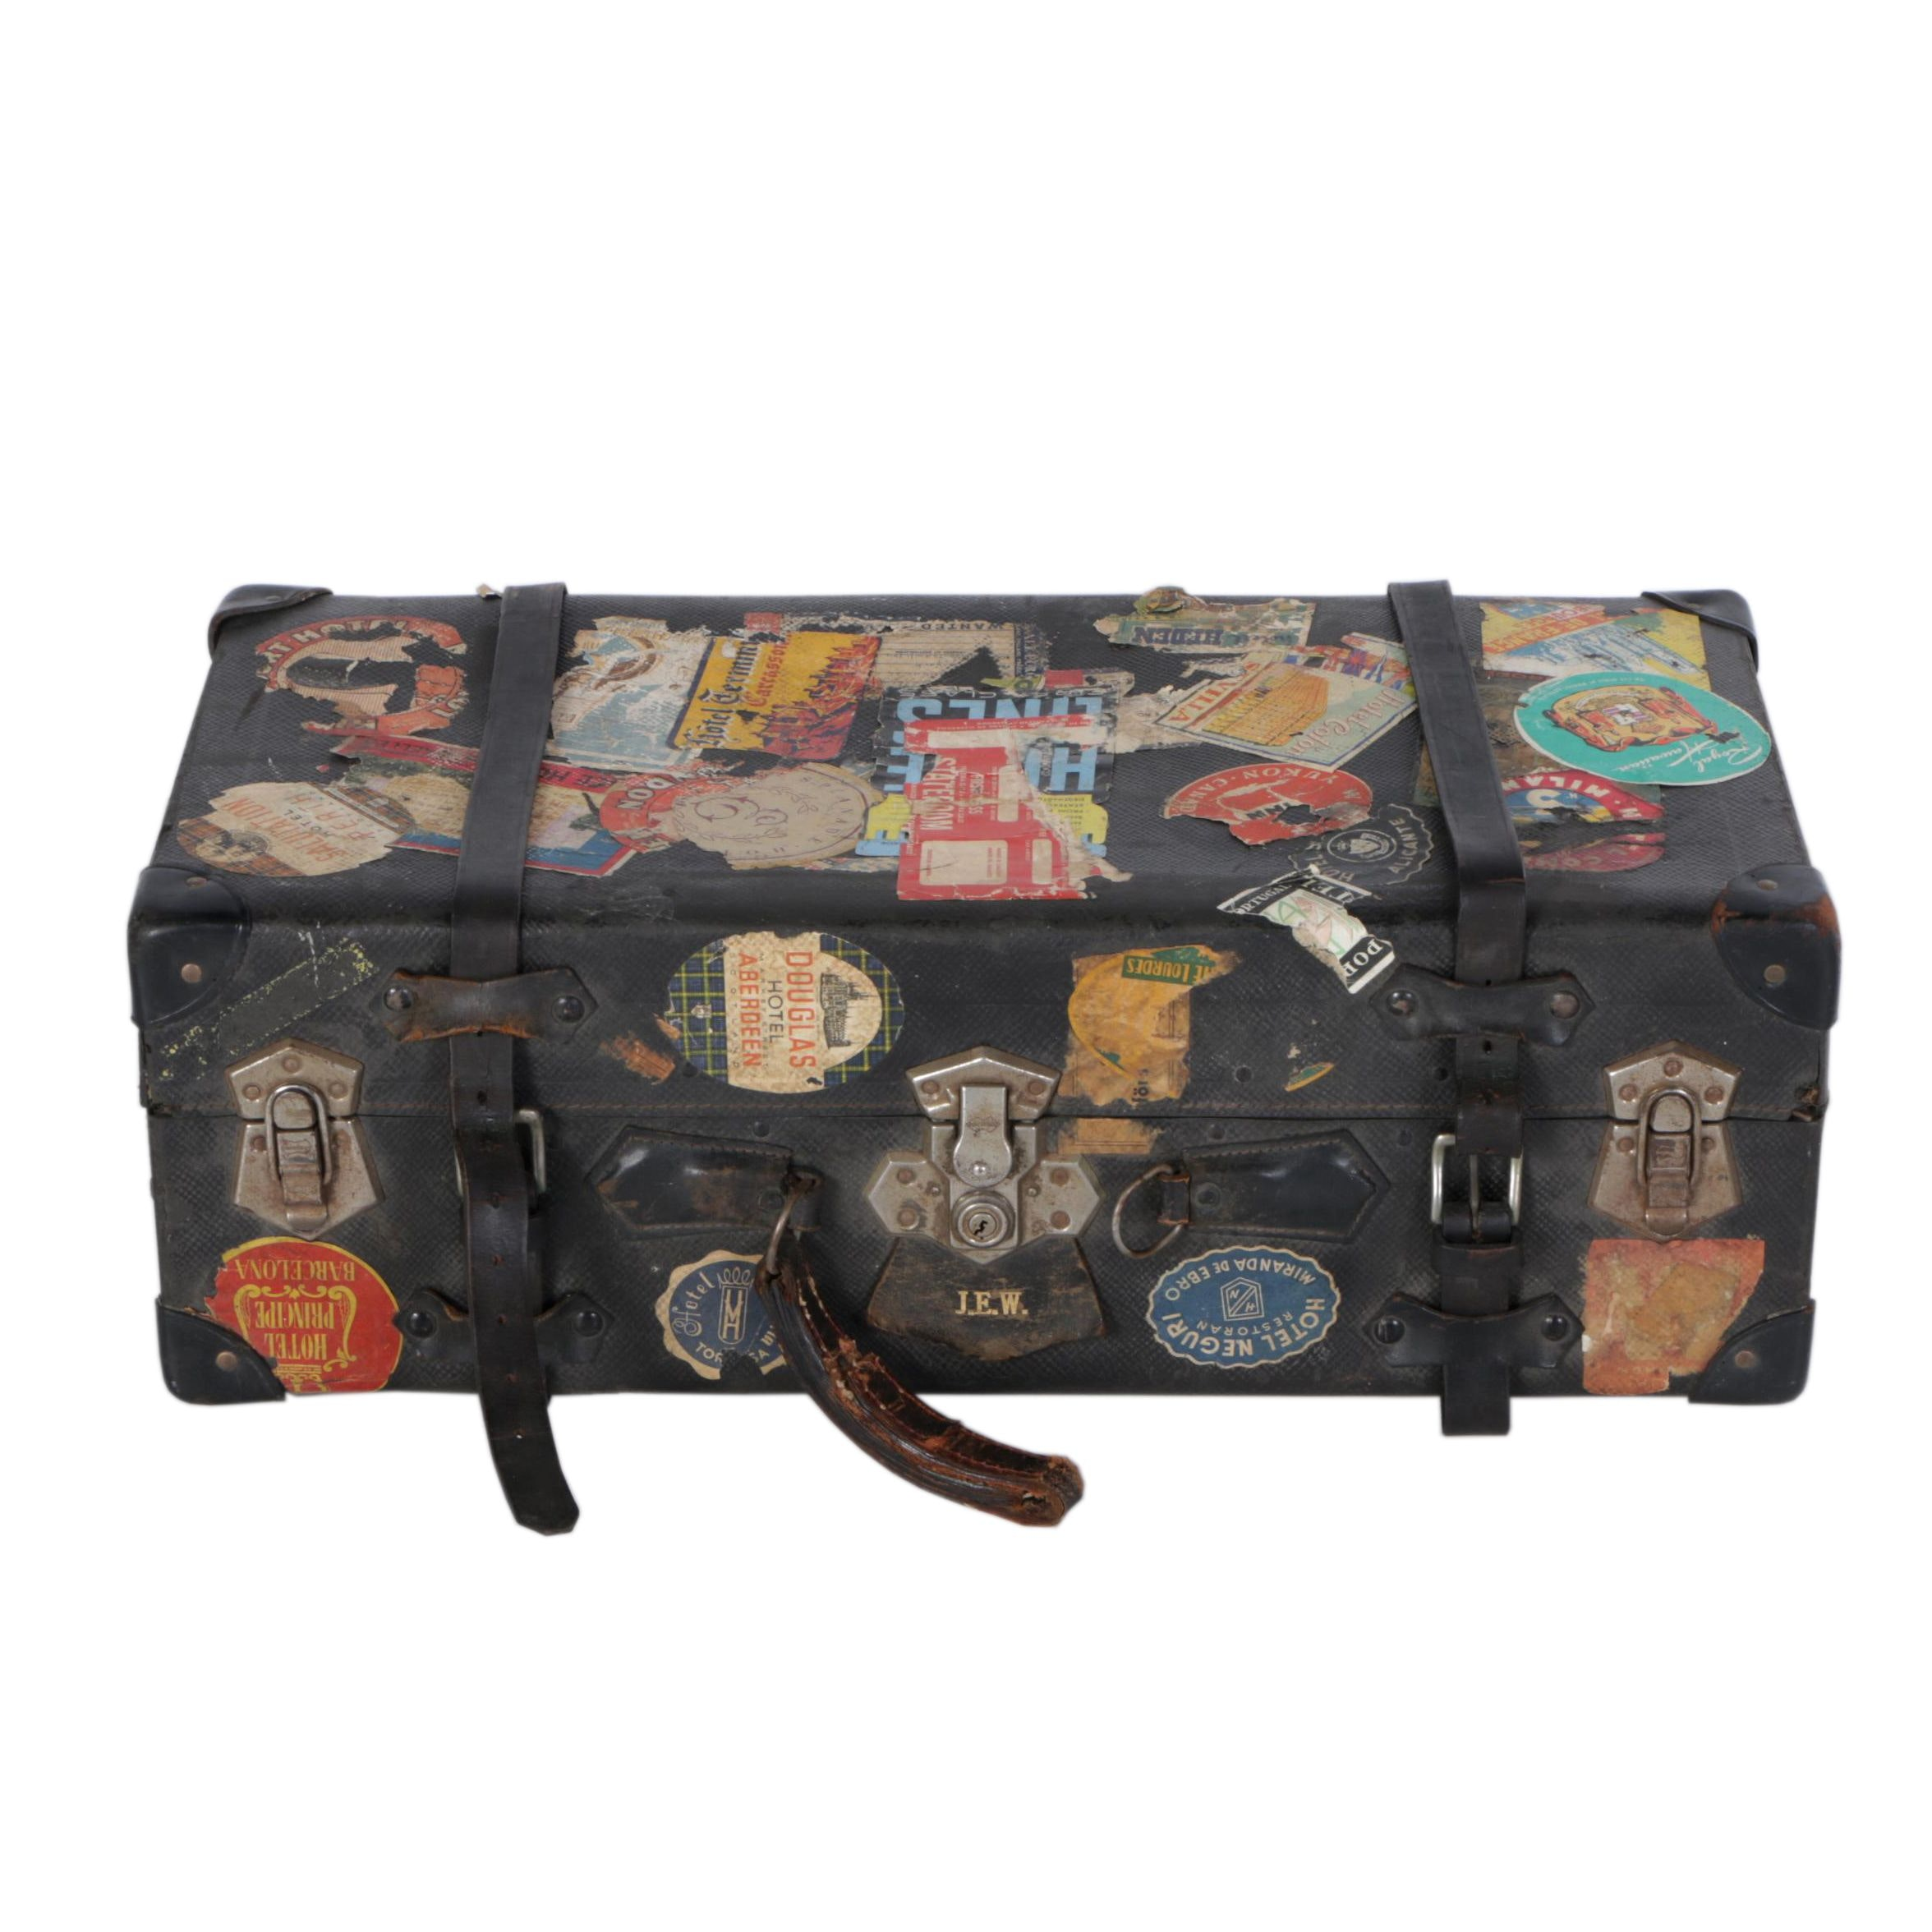 Vintage Luggage Trunk with Vintage Travel Stickers